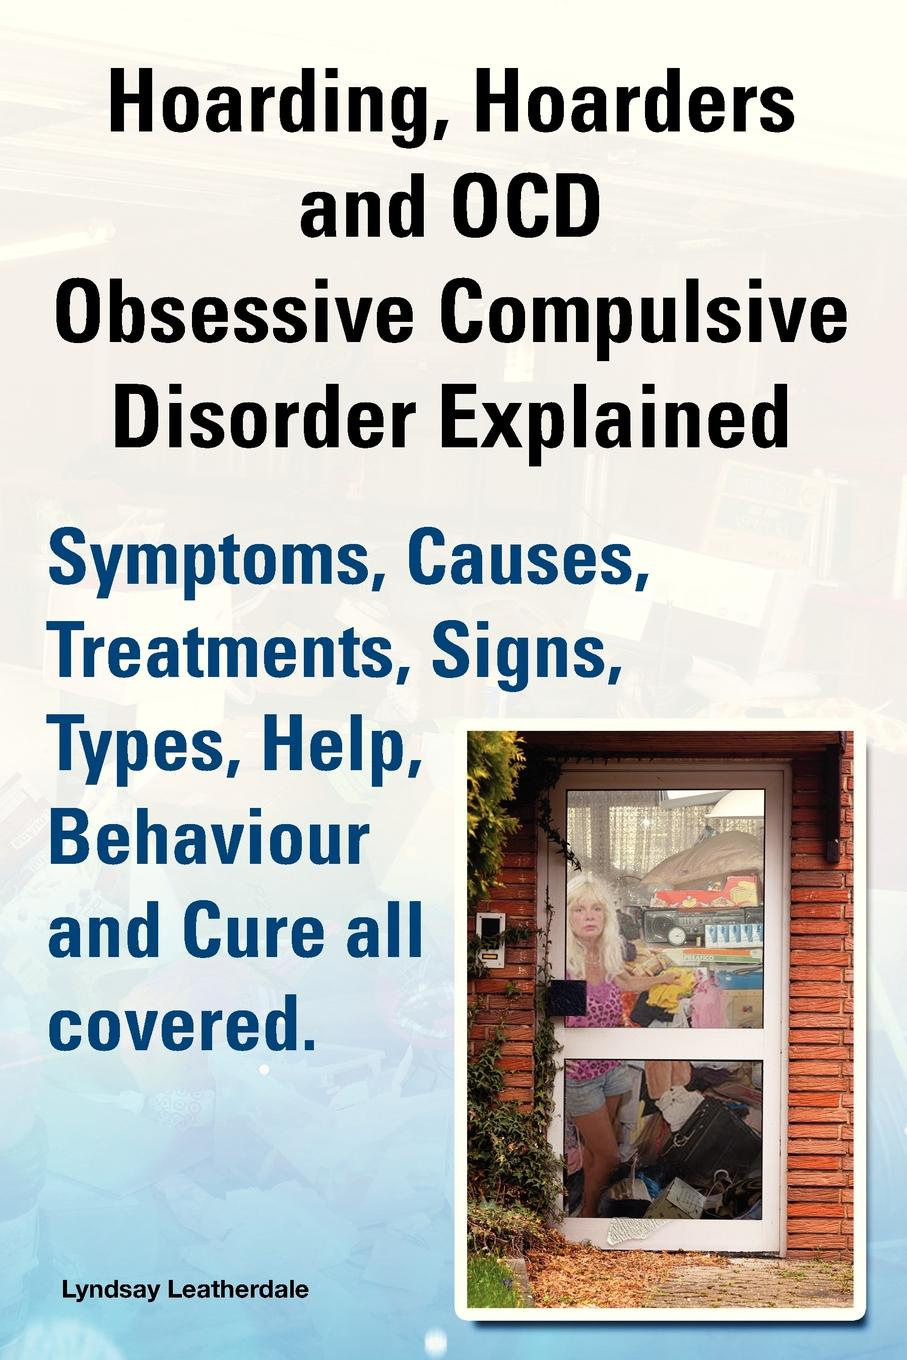 Lyndsay Leatherdale Hoarding, Hoarders and Ocd, Obsessive Compulsive Disorder Explained. Help, Treatments, Symptoms, Causes, Signs, Types, Behaviour and Cure All Covered. alice meyer what is virginity and who is a virgin all about virginity why and towhom is it needed